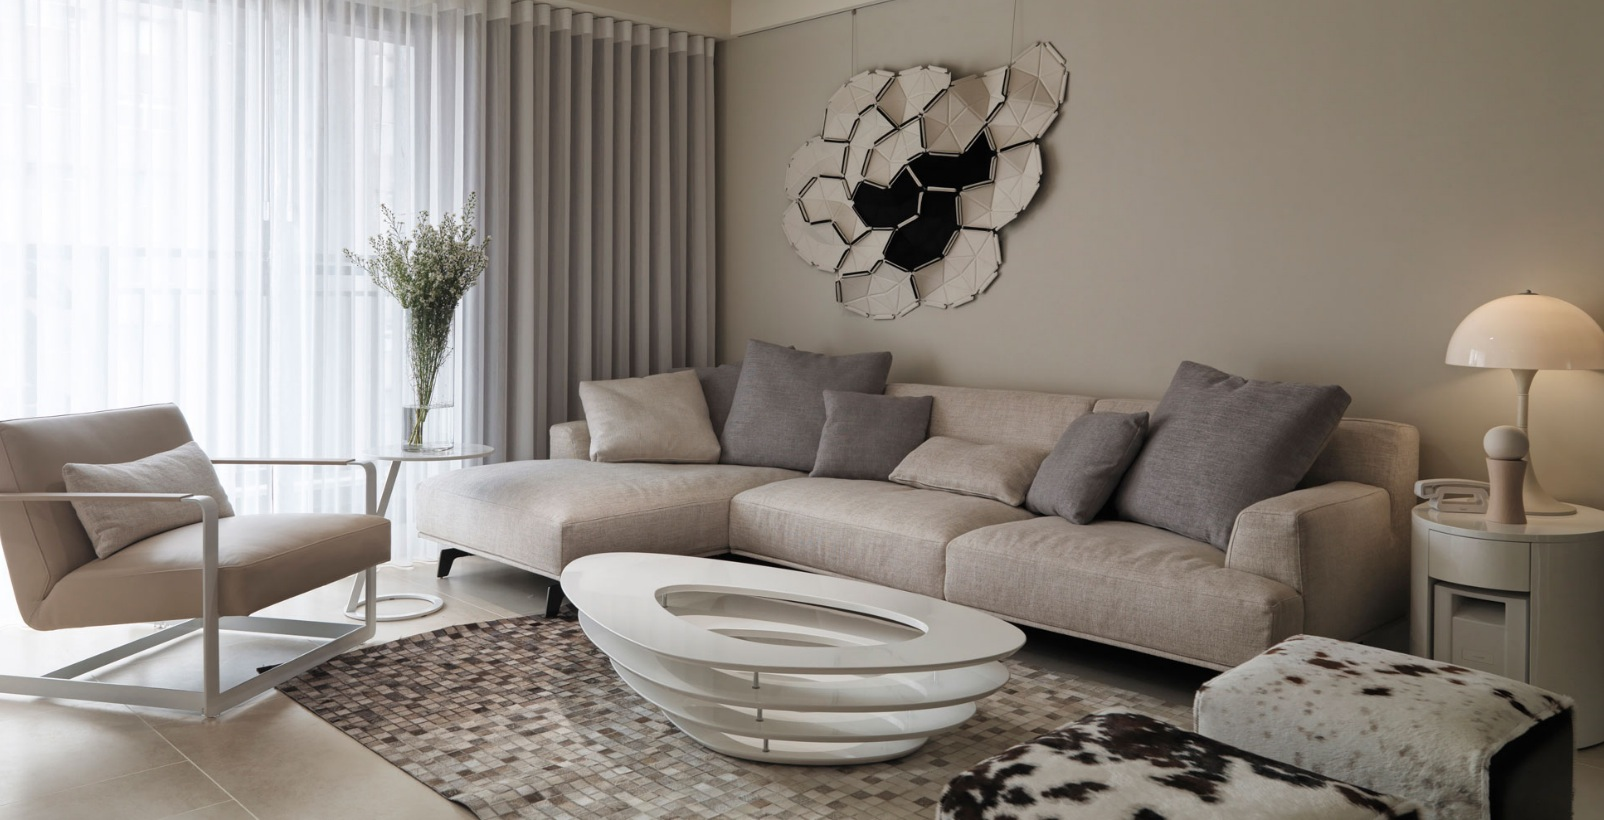 Neutral contemporary living room interior design ideas for Neutral interior design